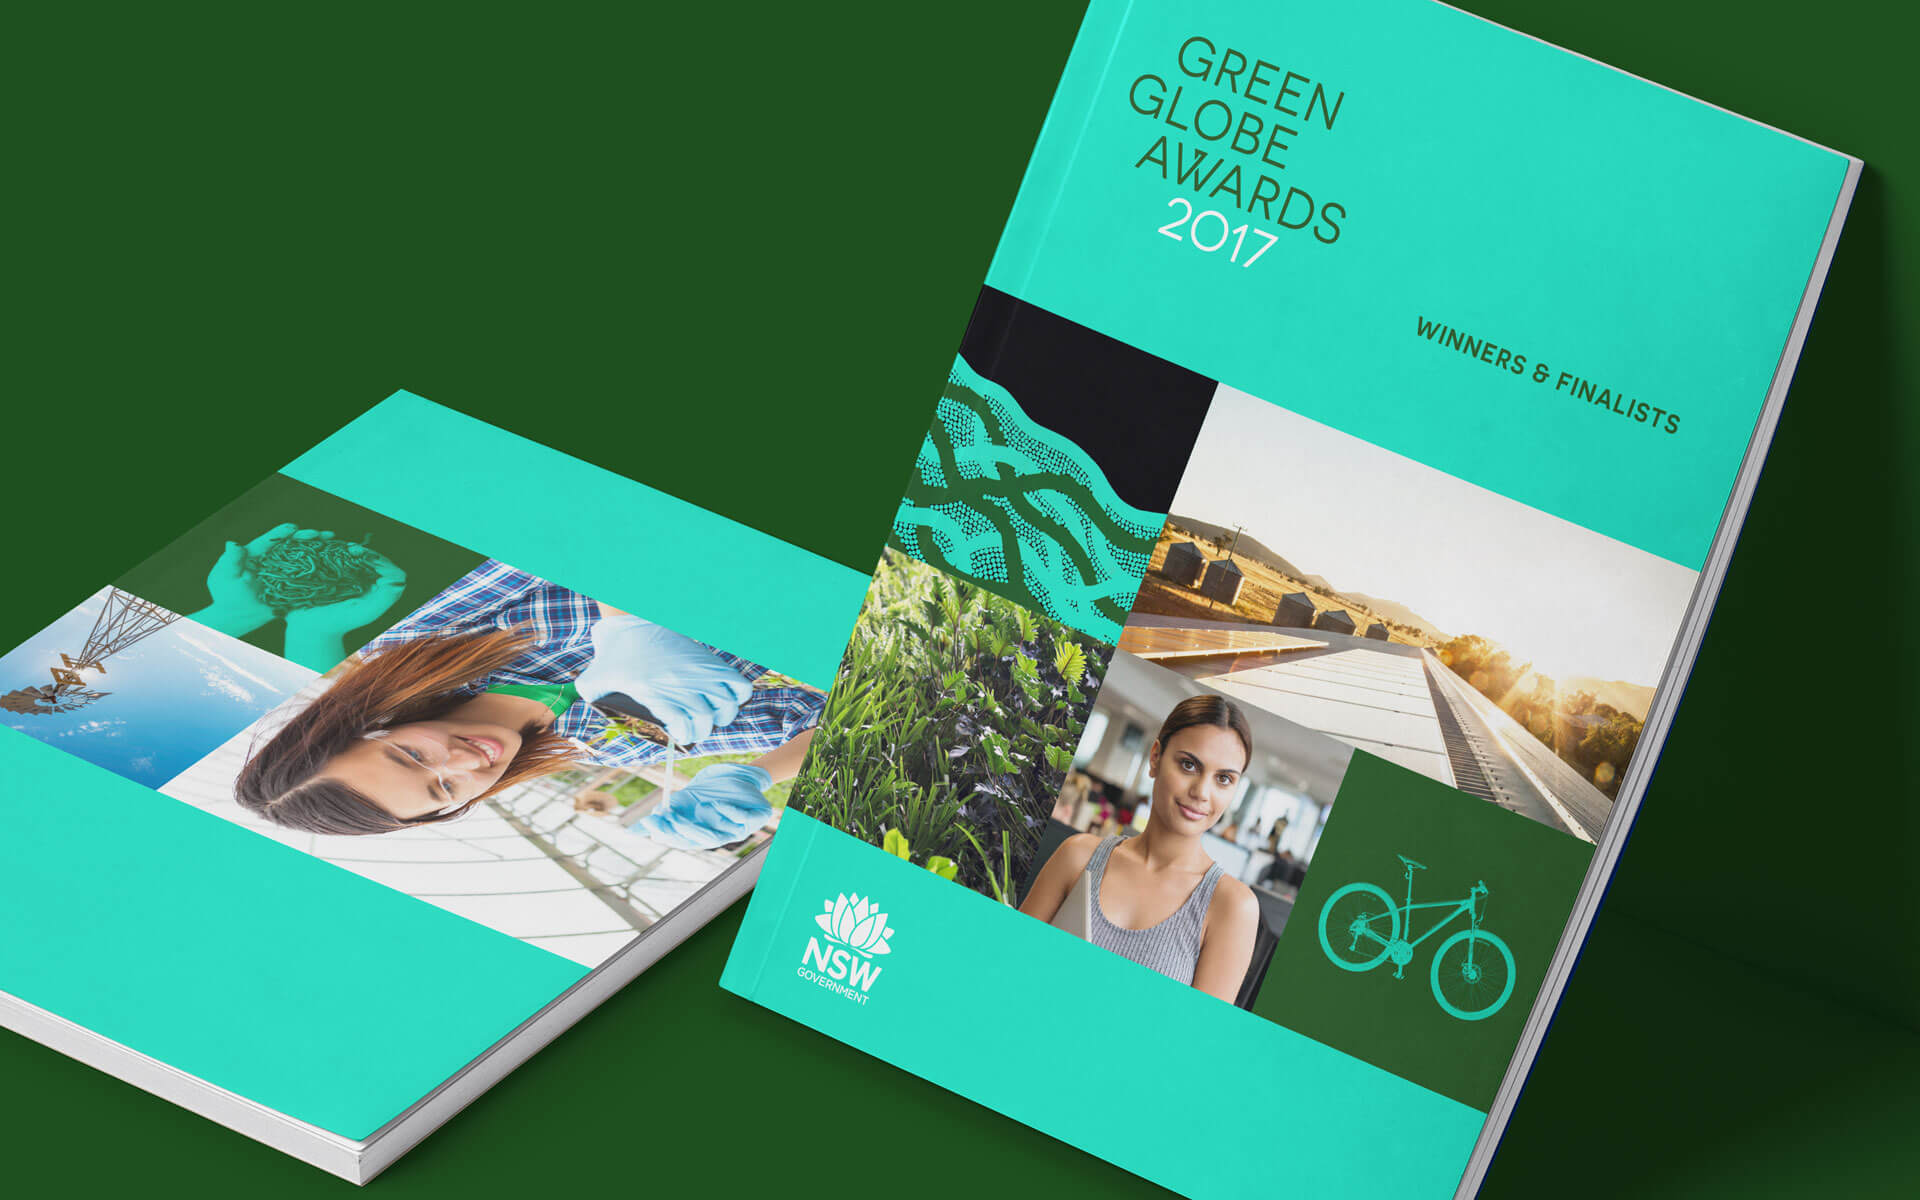 The Green Globe Awards winners and finalists book design.